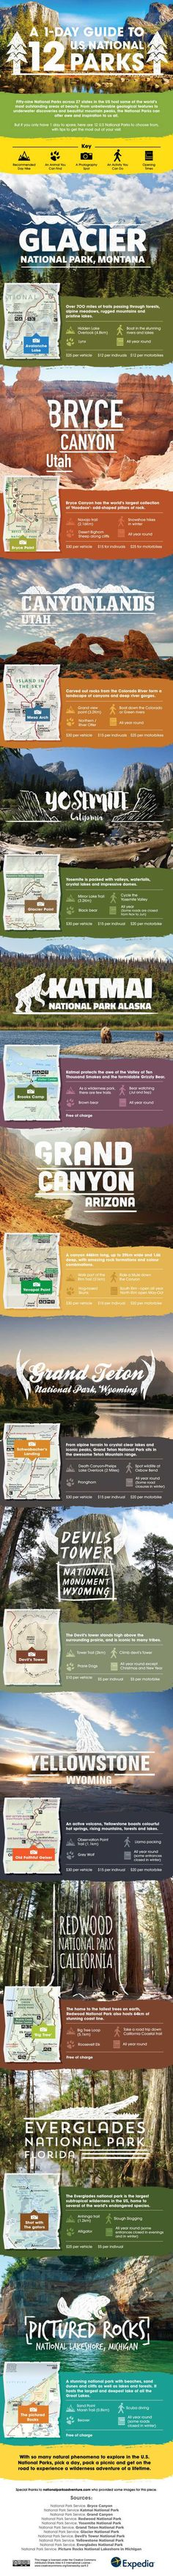 A 1-Day guide to 12 U.S. National Parks - Imgur